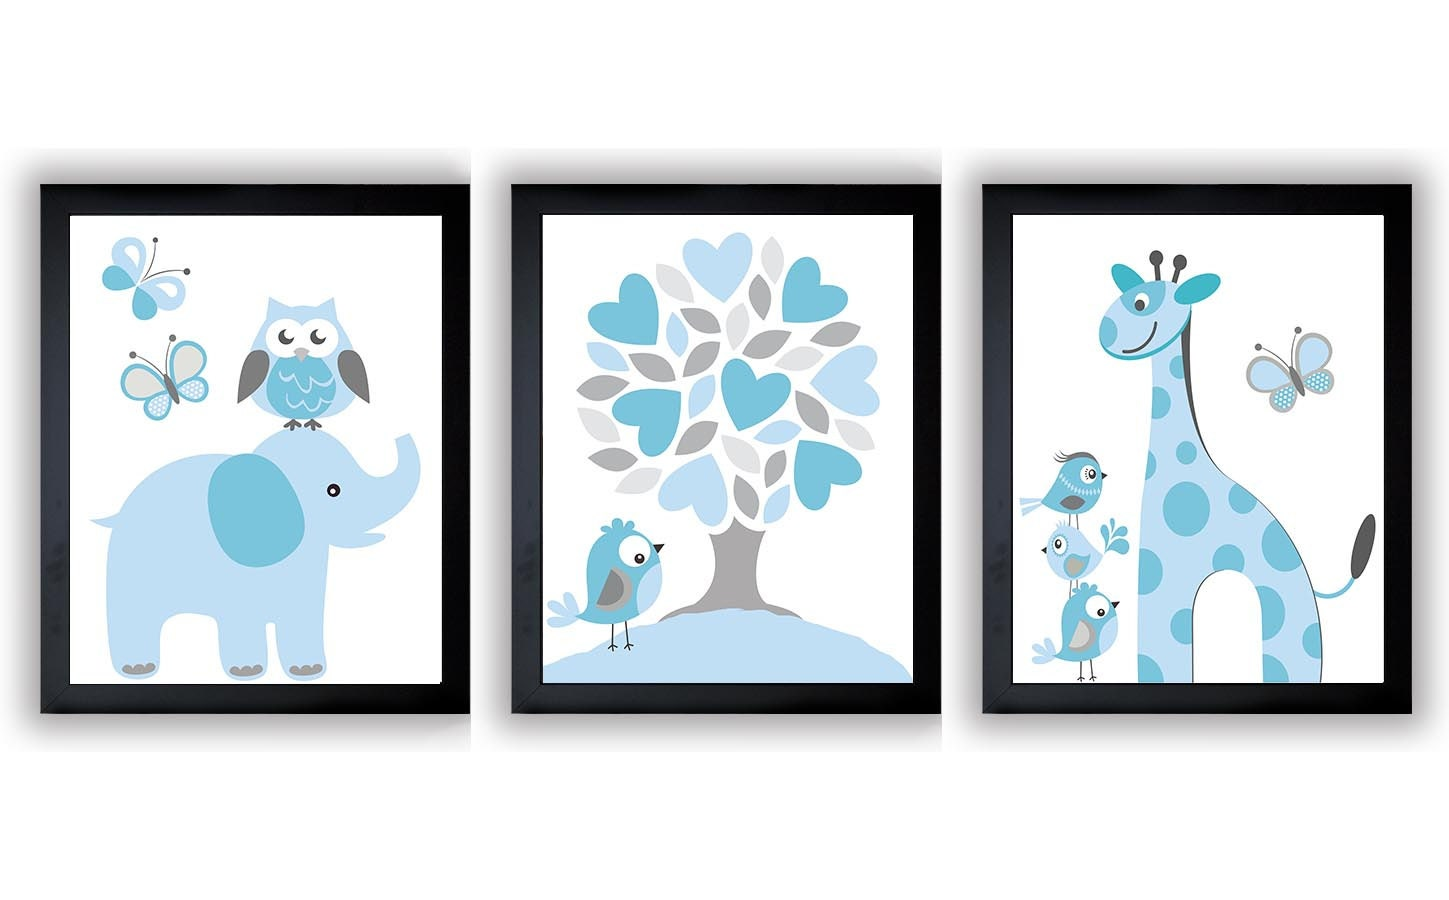 Blue Grey Boys Nursery Art Print Set of 3 Elephant Owl Bird Tree Giraffe Baby Nursery Print Child Ki